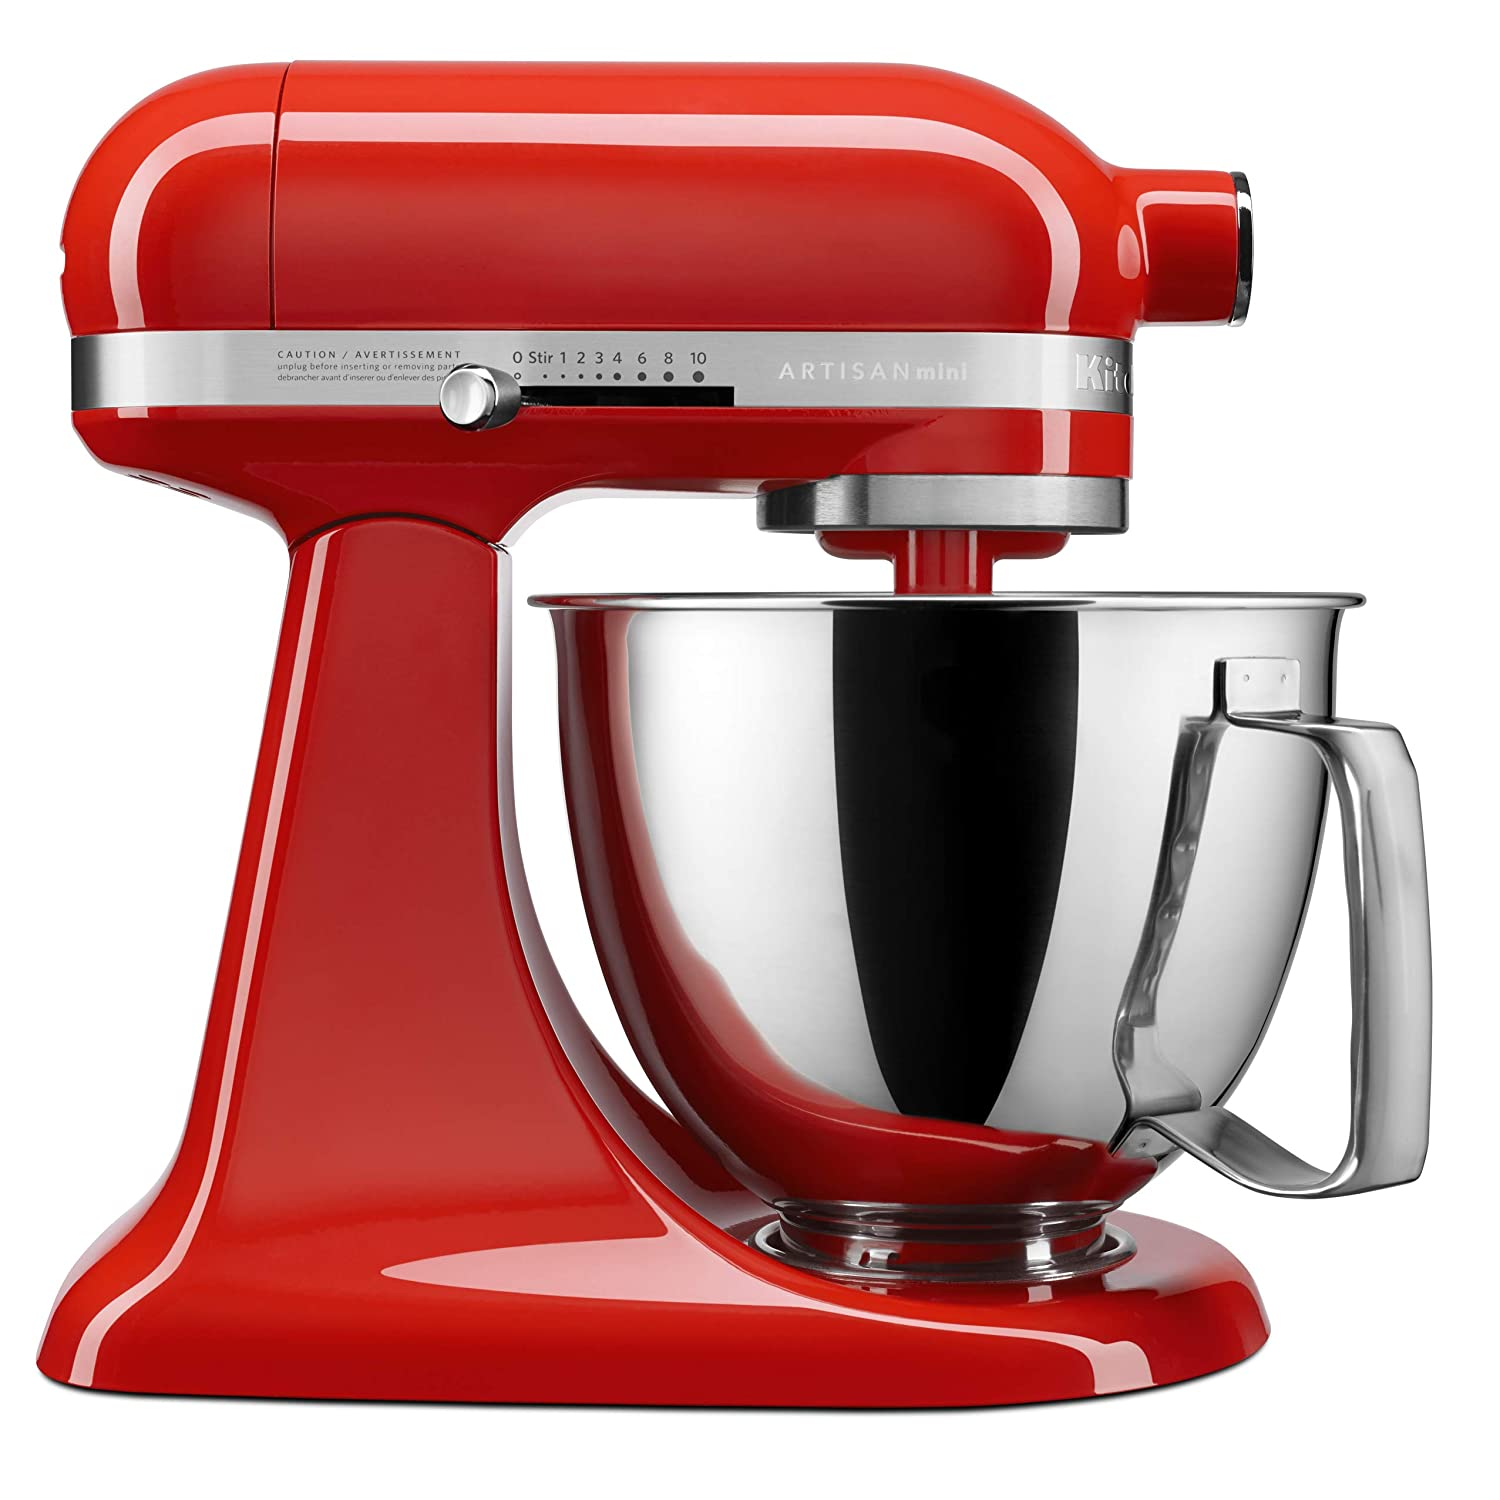 KitchenAid KSM3316XHT Artisan Mini Stand Mixers, 3.5 quart, Hot Sauce